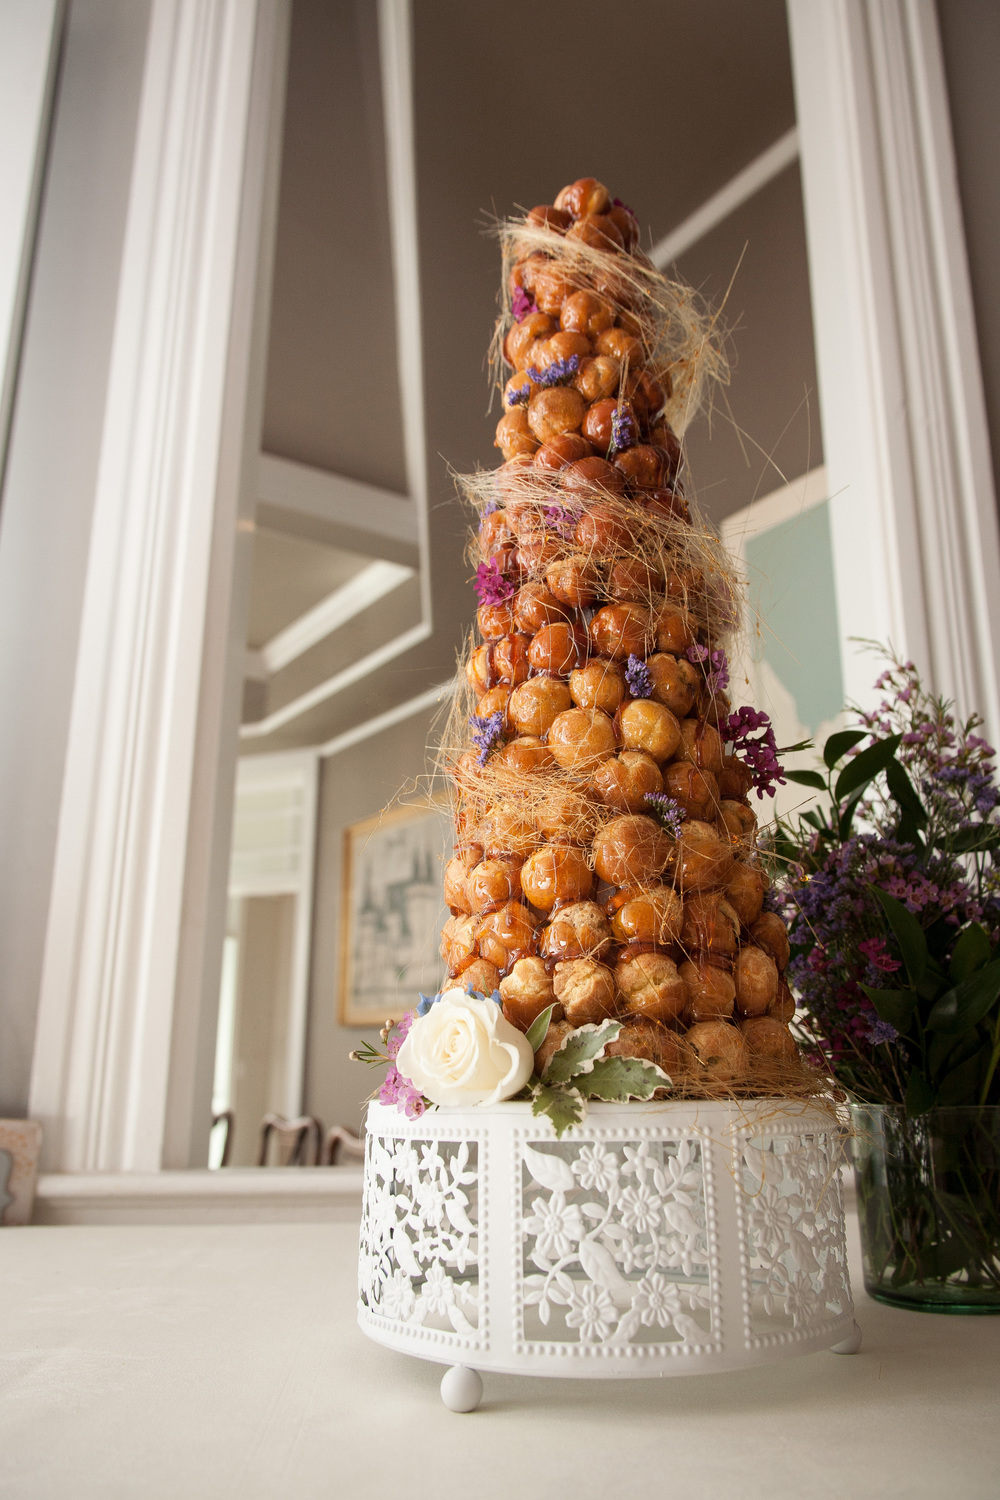 Wedding croquembouche at L'auberge Provencale near Winchester, virginia